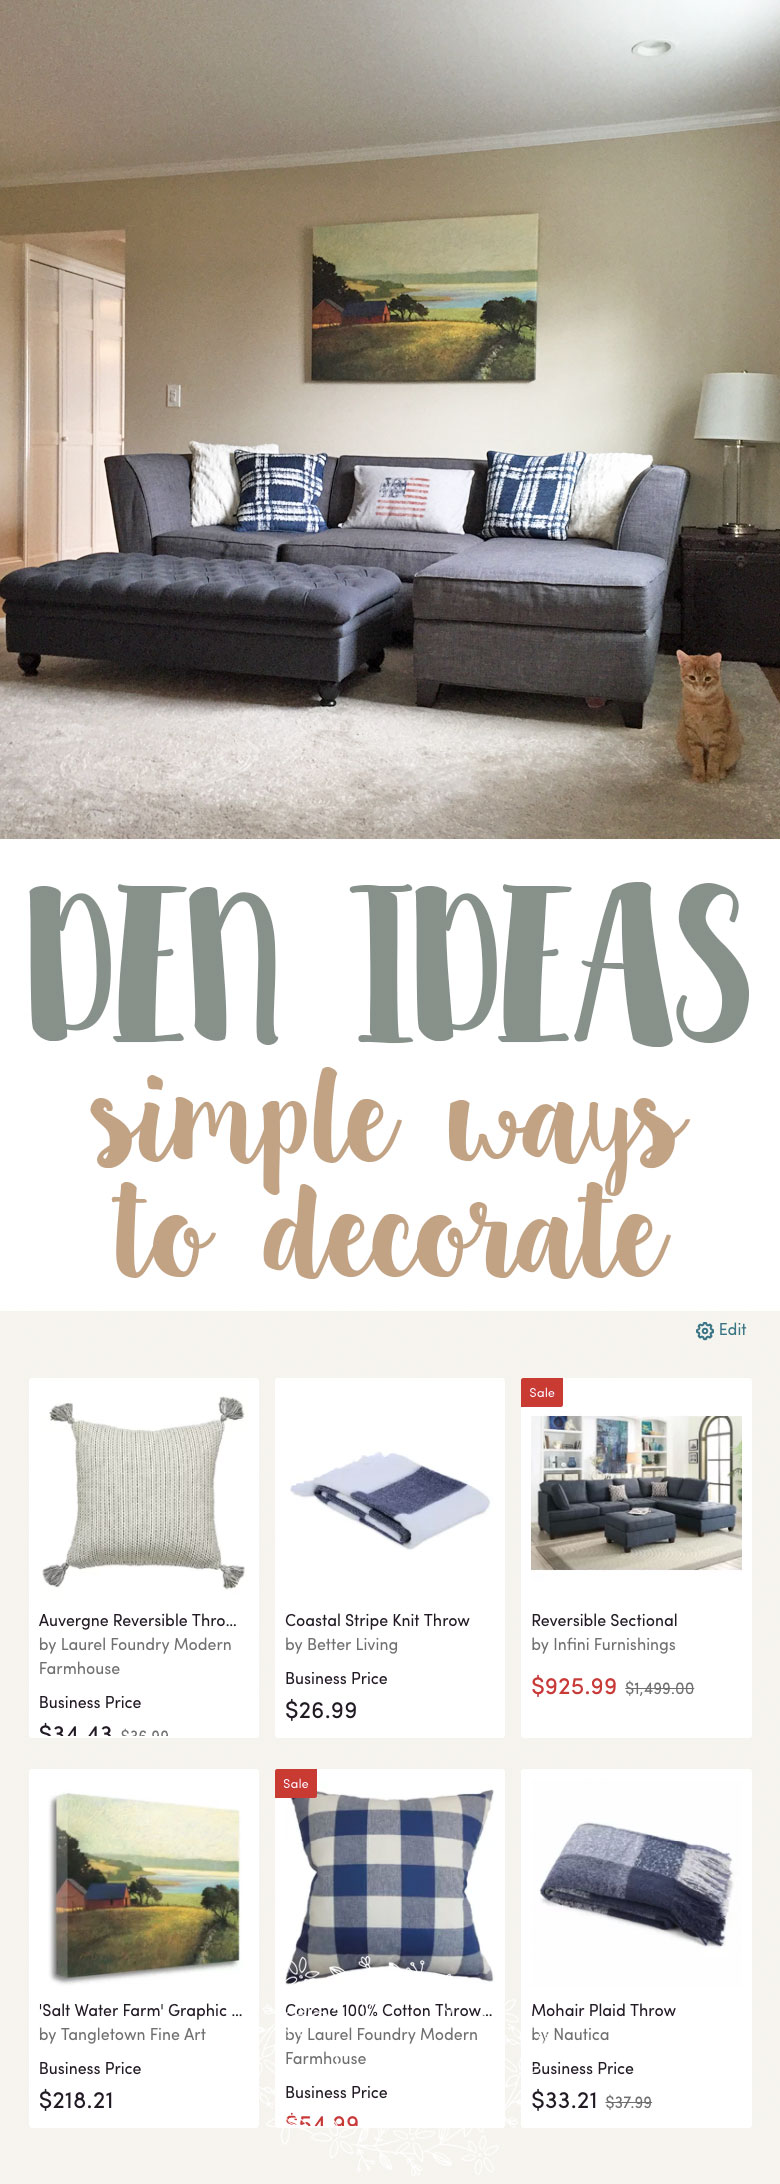 Decorating your home doesn't have to be a stressful task. My den ideas board is a curated collection of things my family and I love. Decorating is easy with these 3 simple steps.